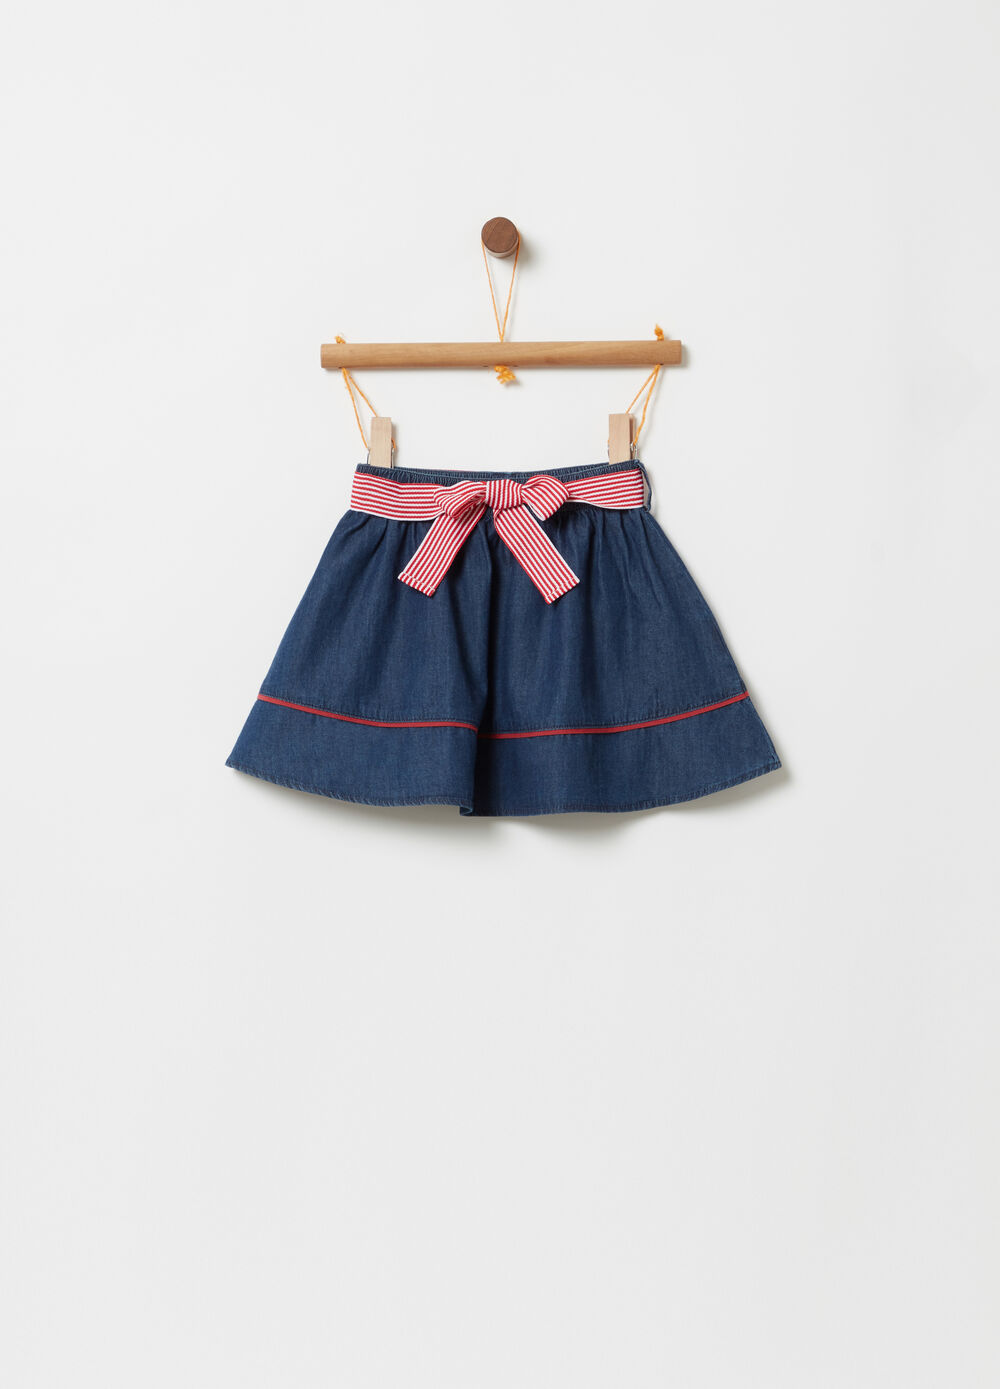 Denim skirt with elasticated waistband and sash